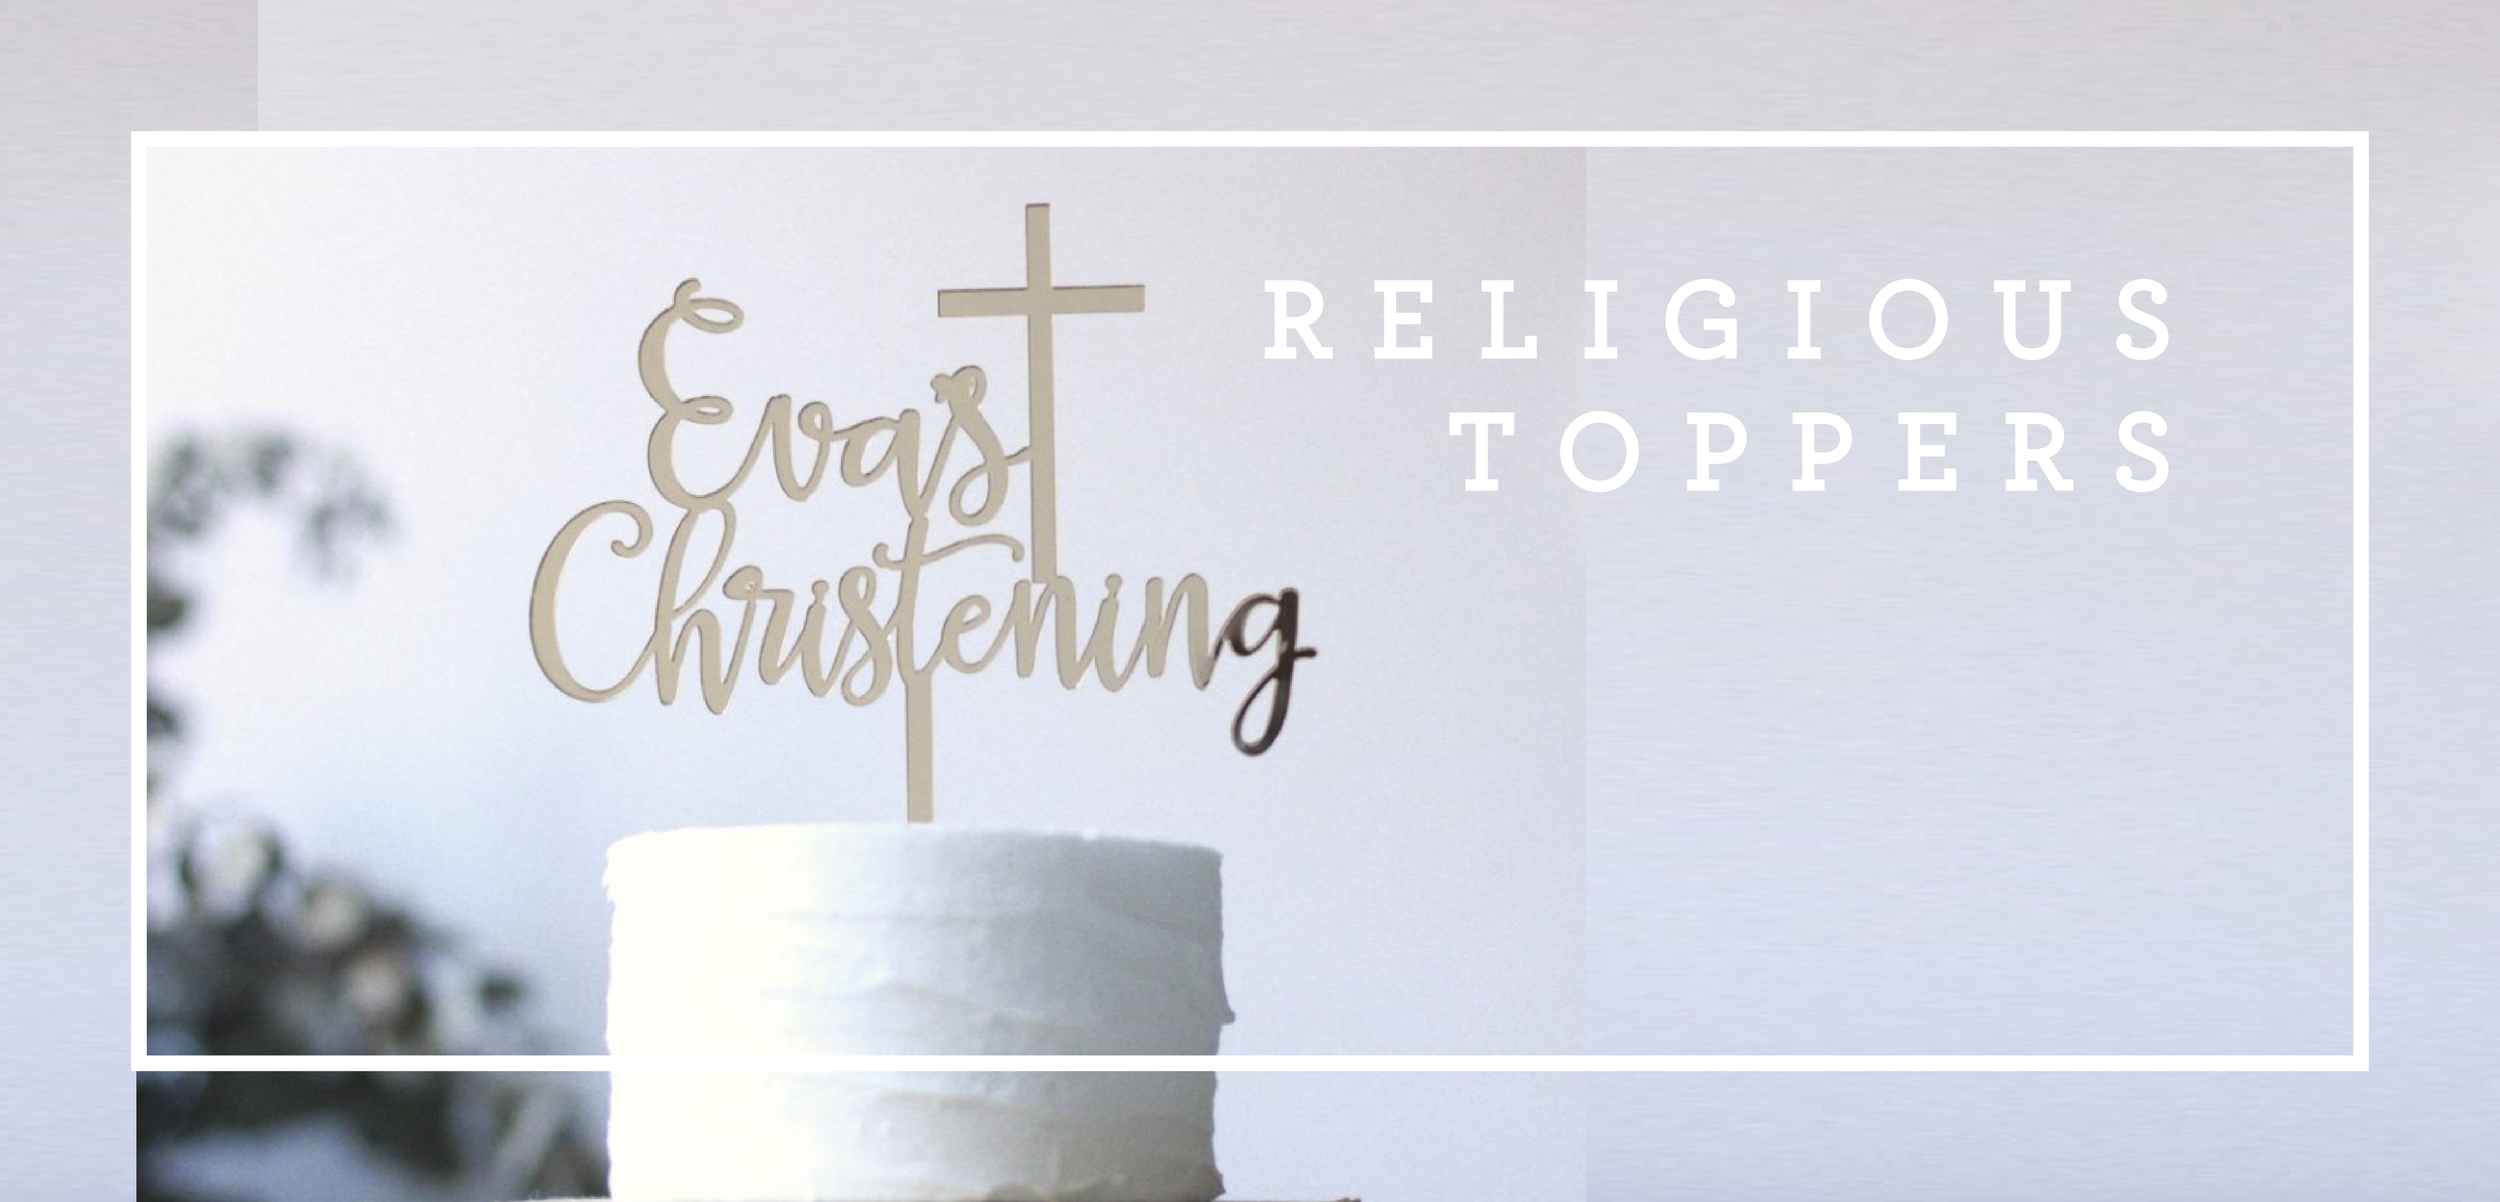 RELIGIOUS TOPPERS, CHRISTENING TOPPERS